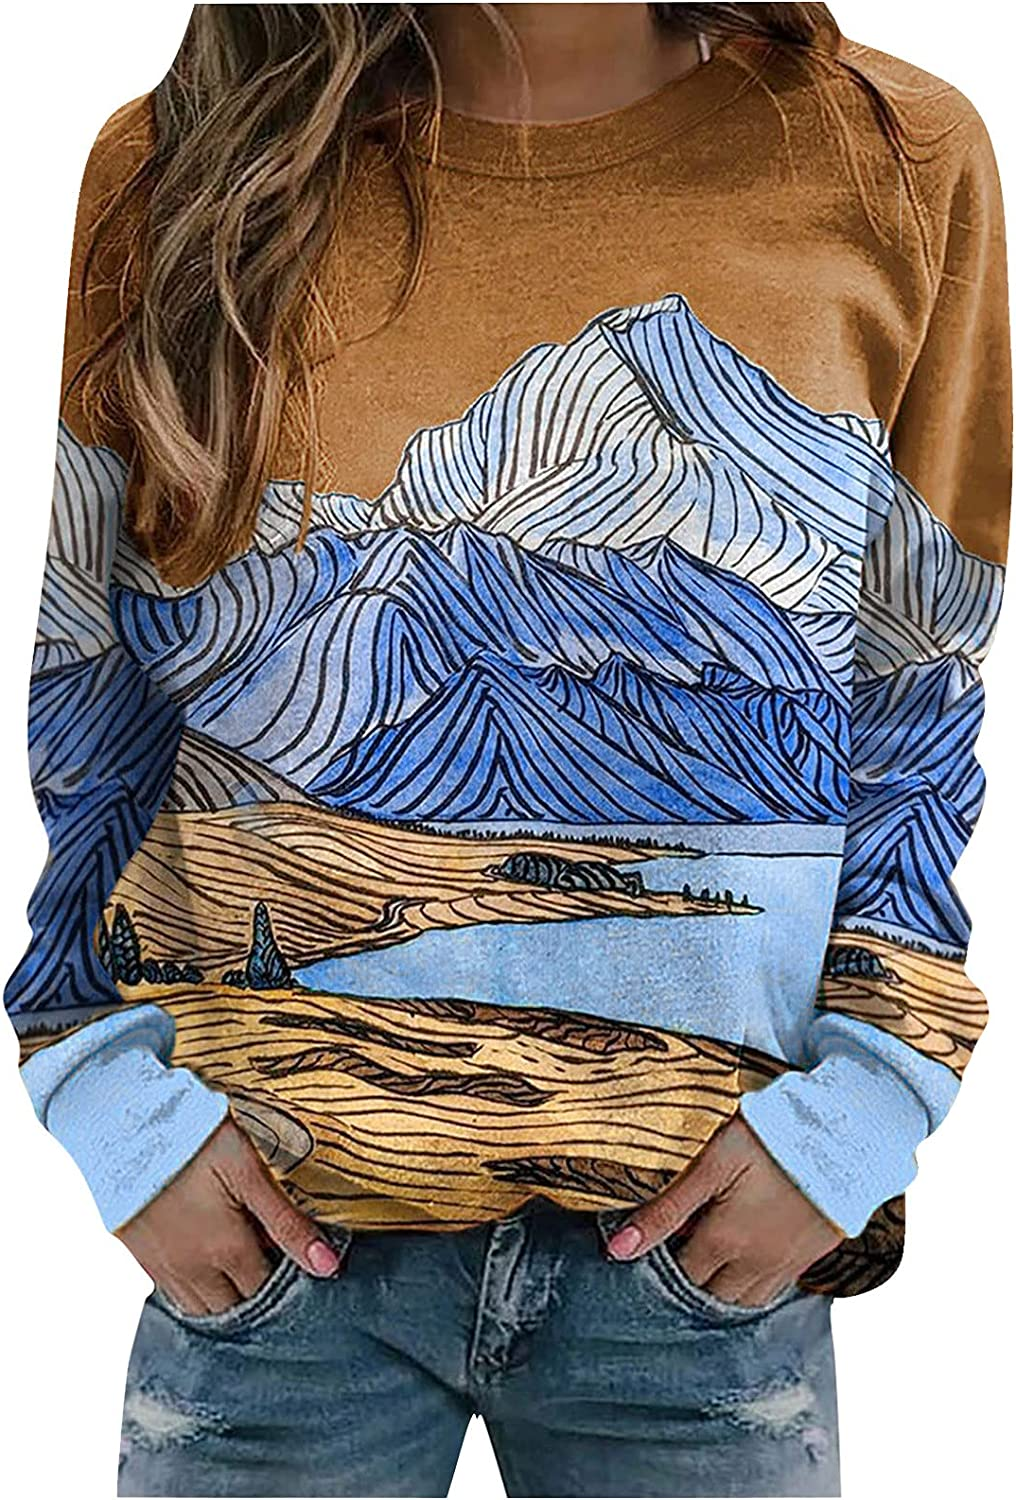 Halloween Fall Crewneck Sweatshirts Women Plus Size Vintage Landscape Painting Printed Pullover Blouse Going Out Tops